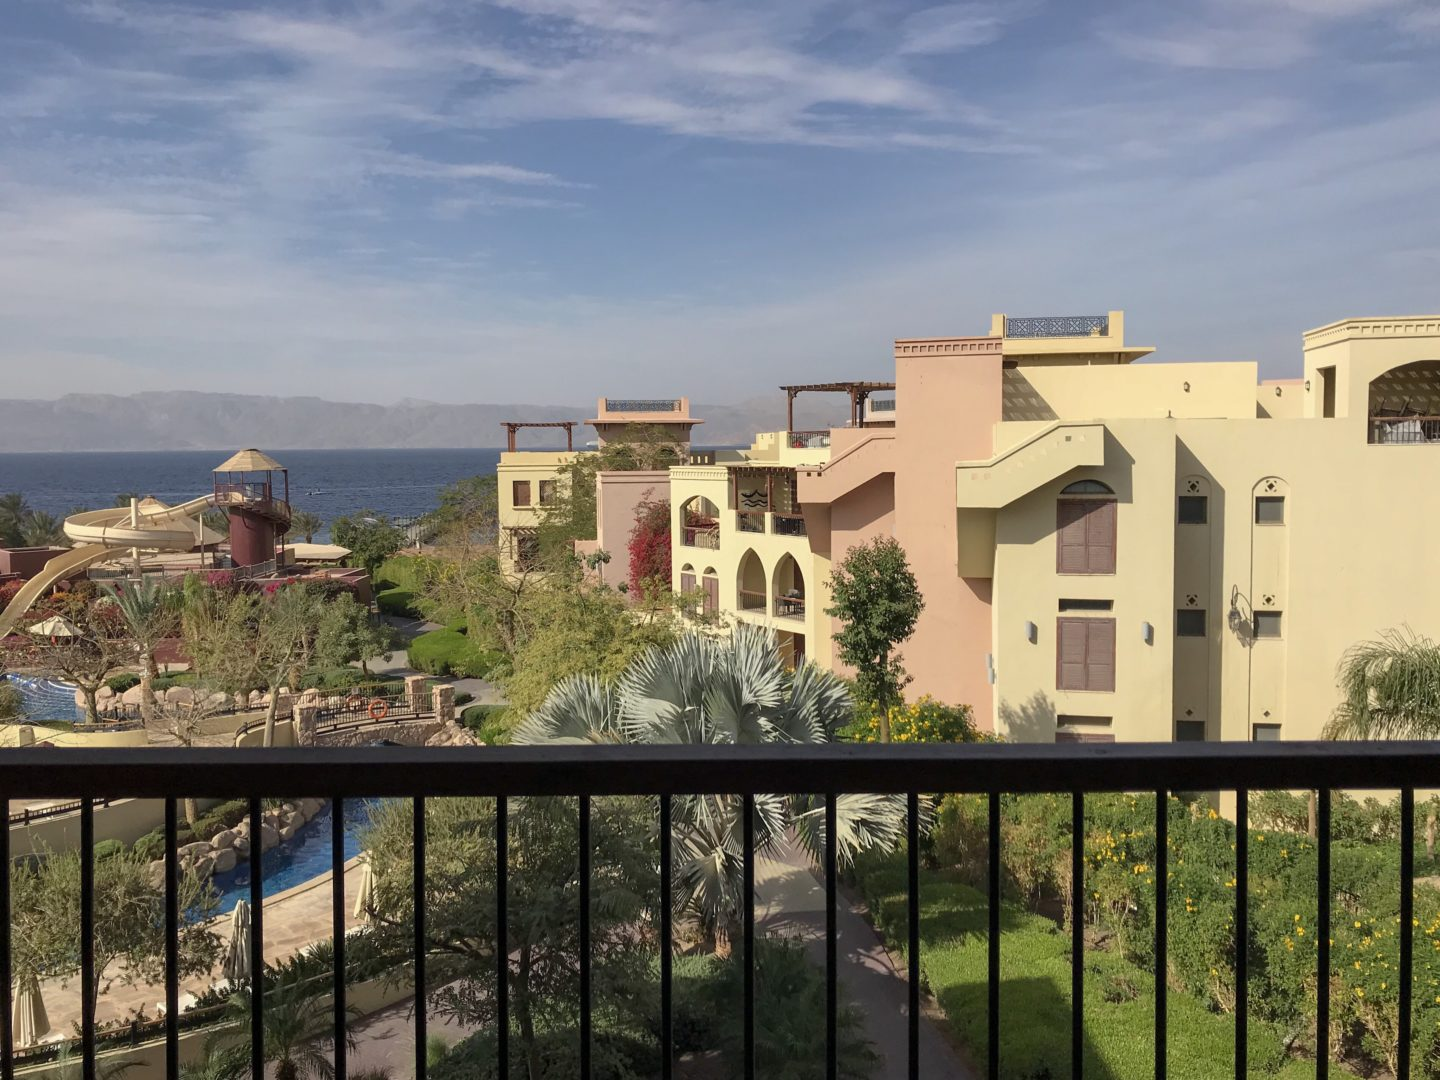 Jordan Itineraries - View from our room in Aqaba